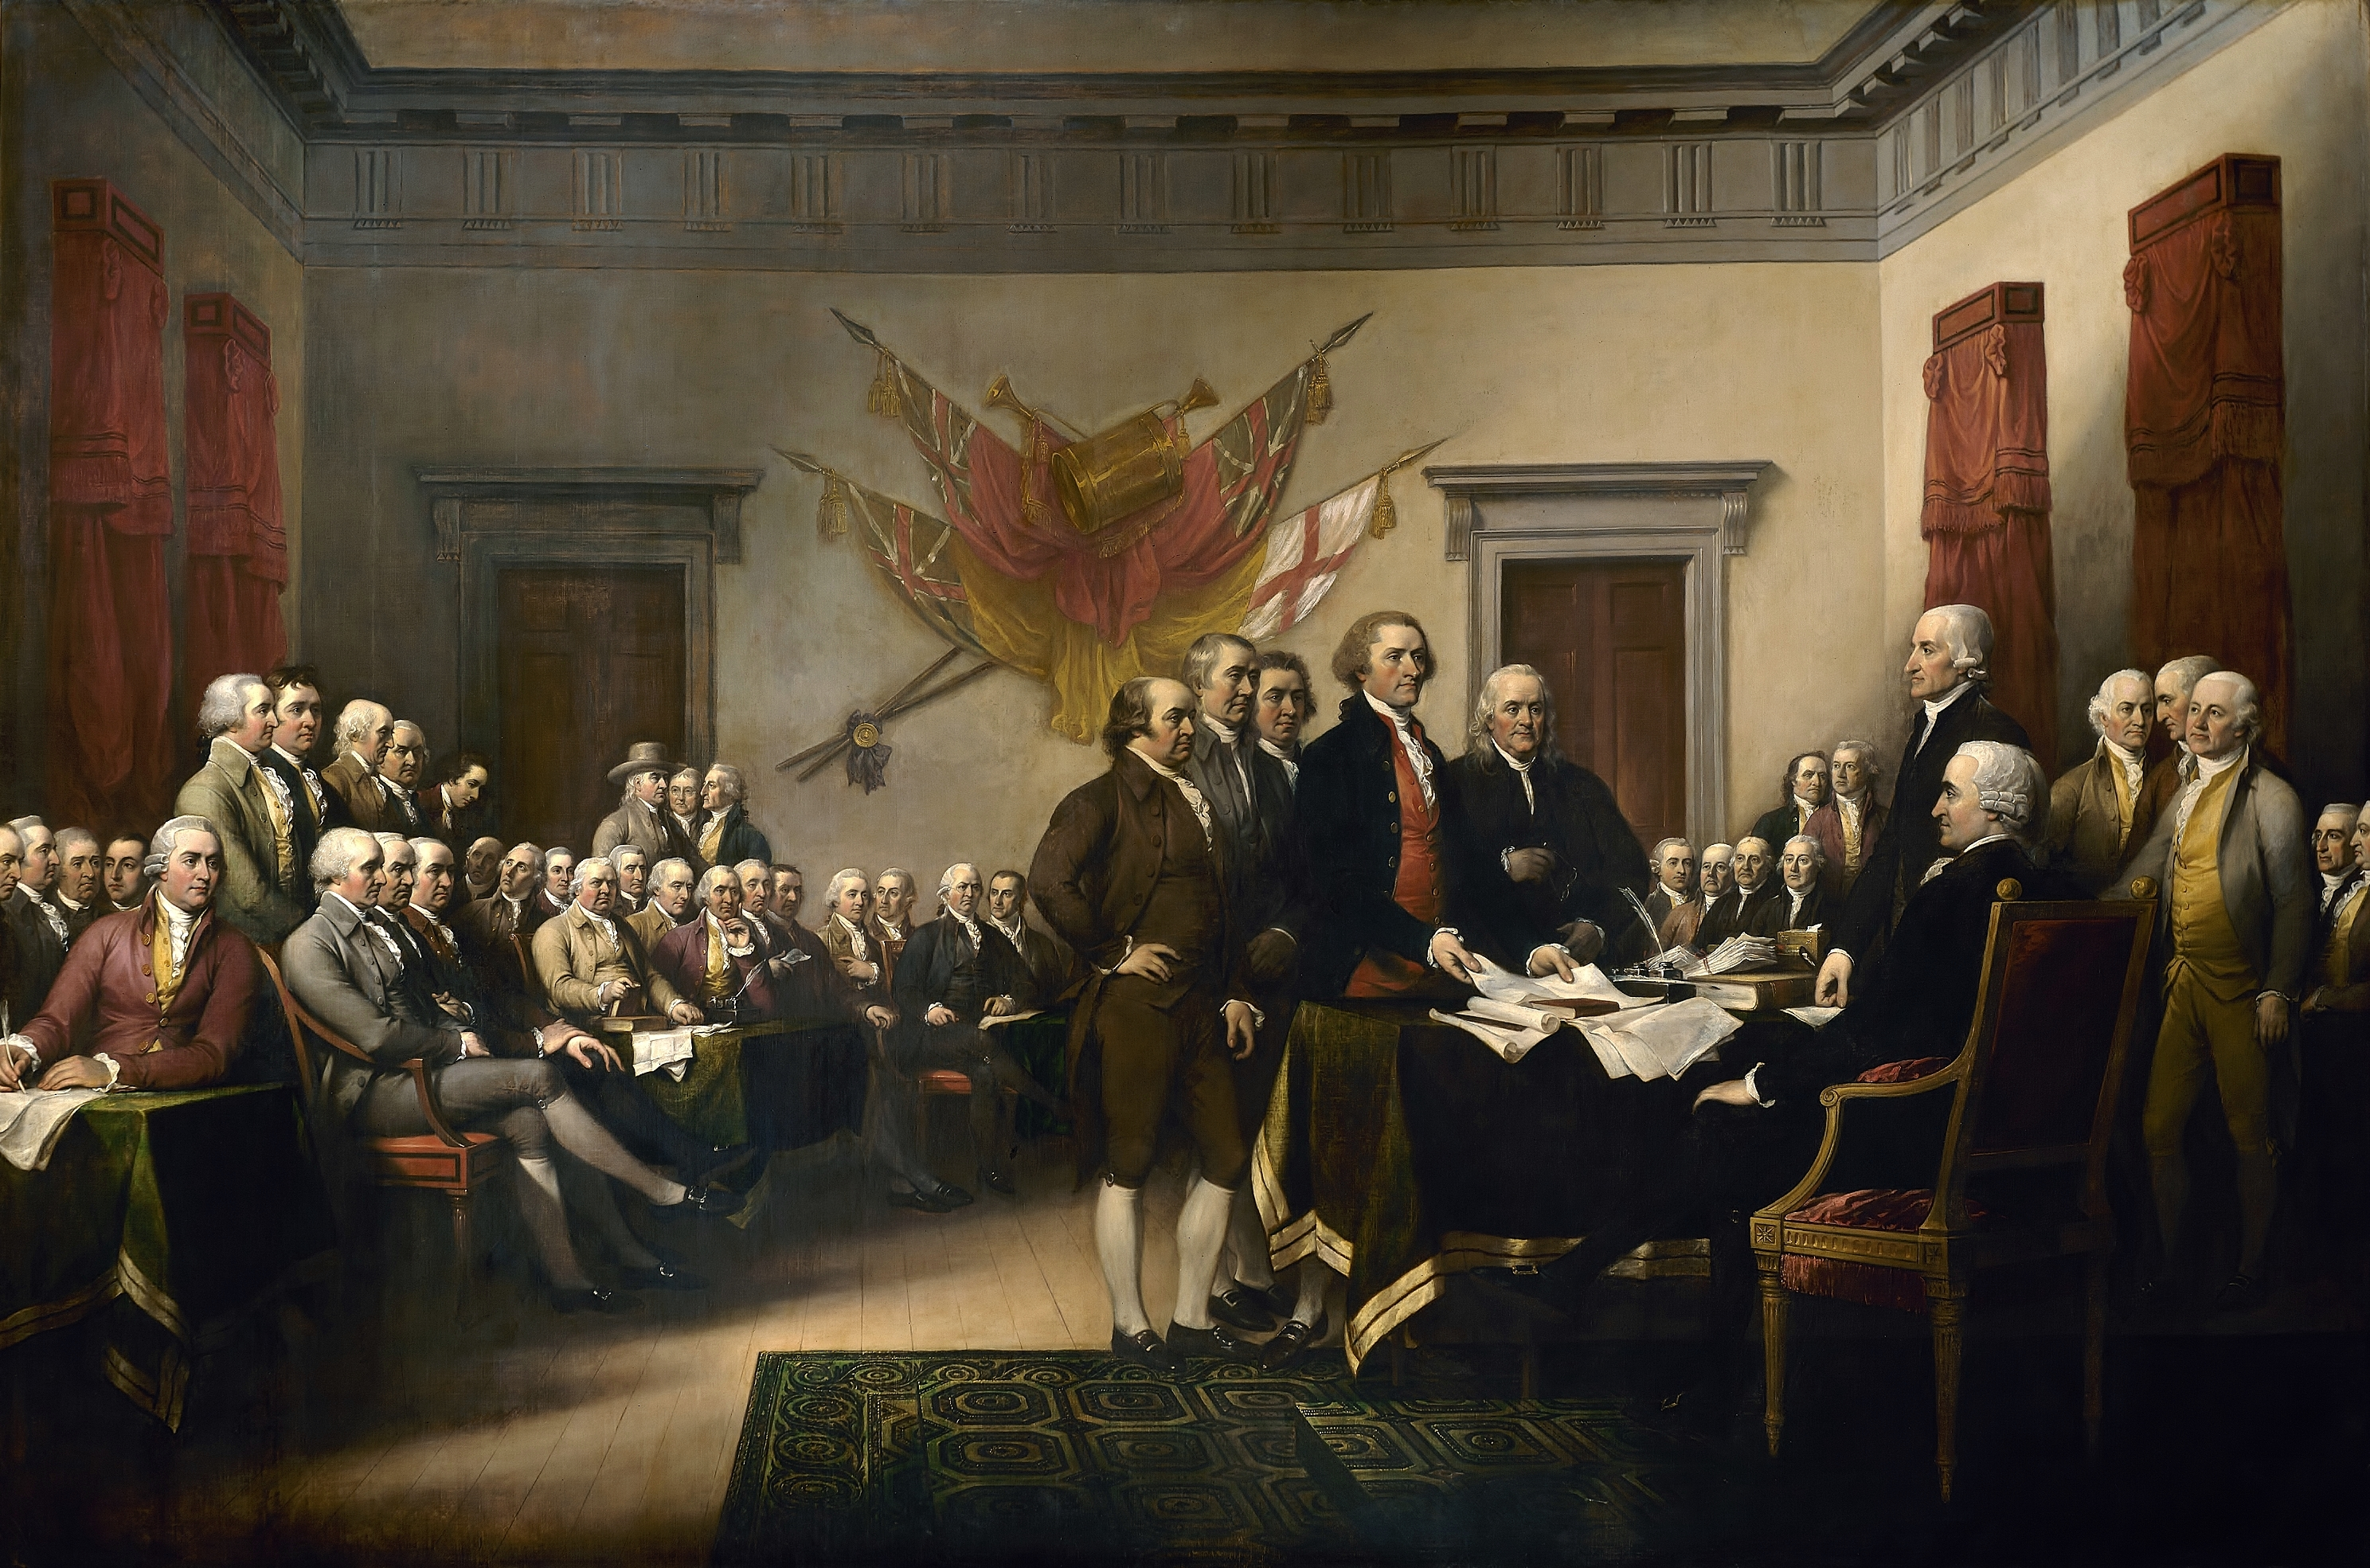 John Trumbull's 1819 painting, Declaration of Independence, depicting the five-man drafting committee of the Declaration of Independence presenting their work to the Congress. The painting can be found on the back of the U.S. $2 bill. The original hangs in the US Capitol rotunda.